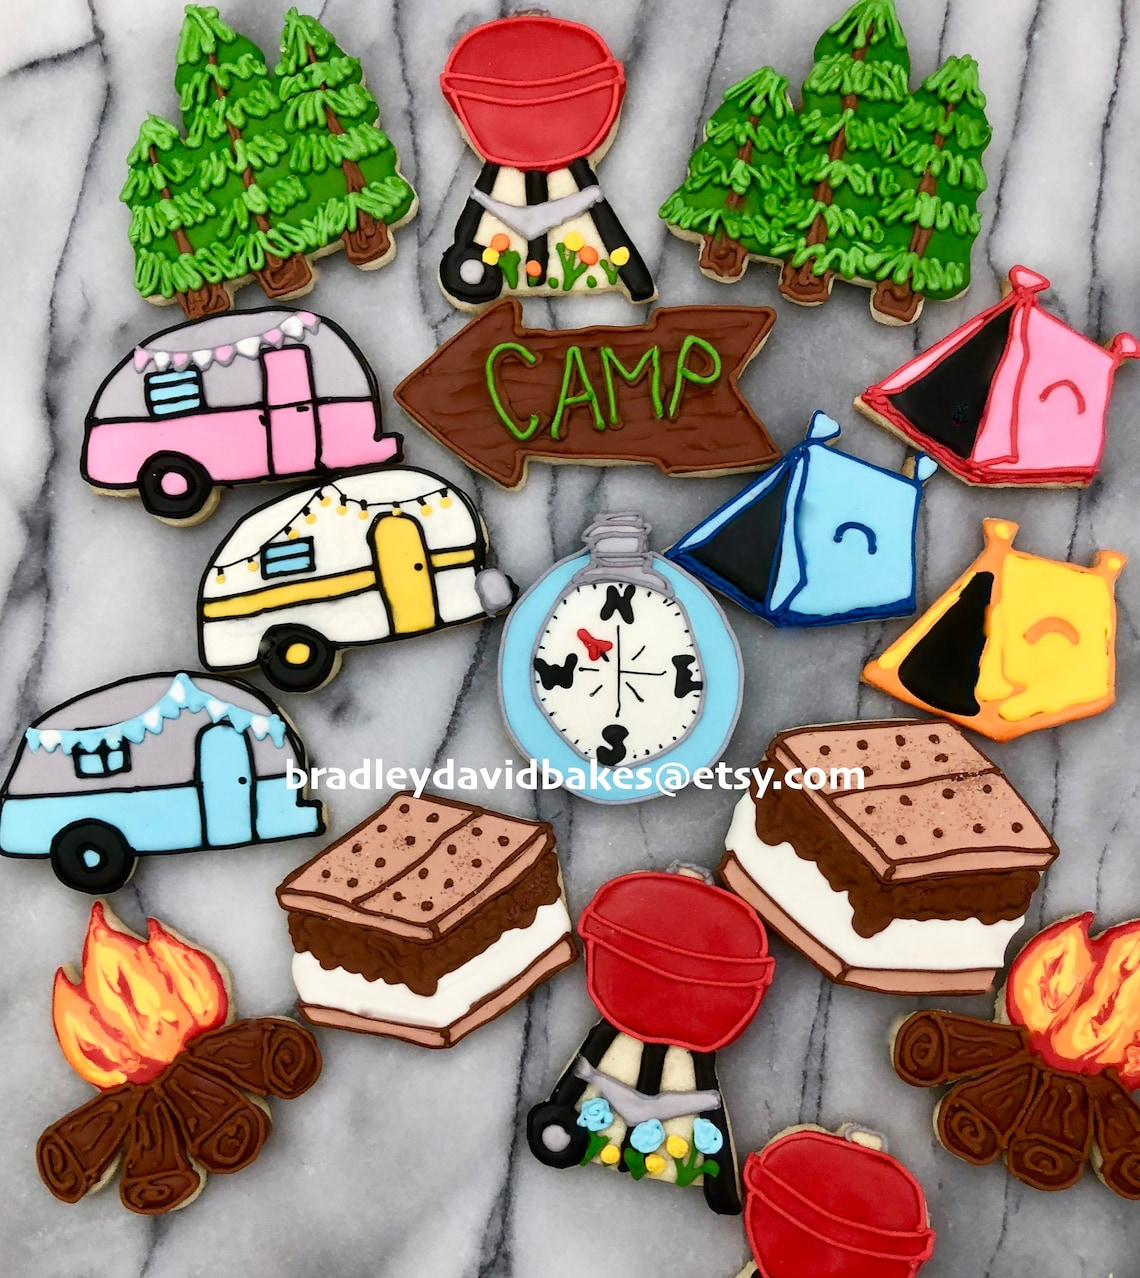 Custom Hand Crafted Camping Themed Cookies